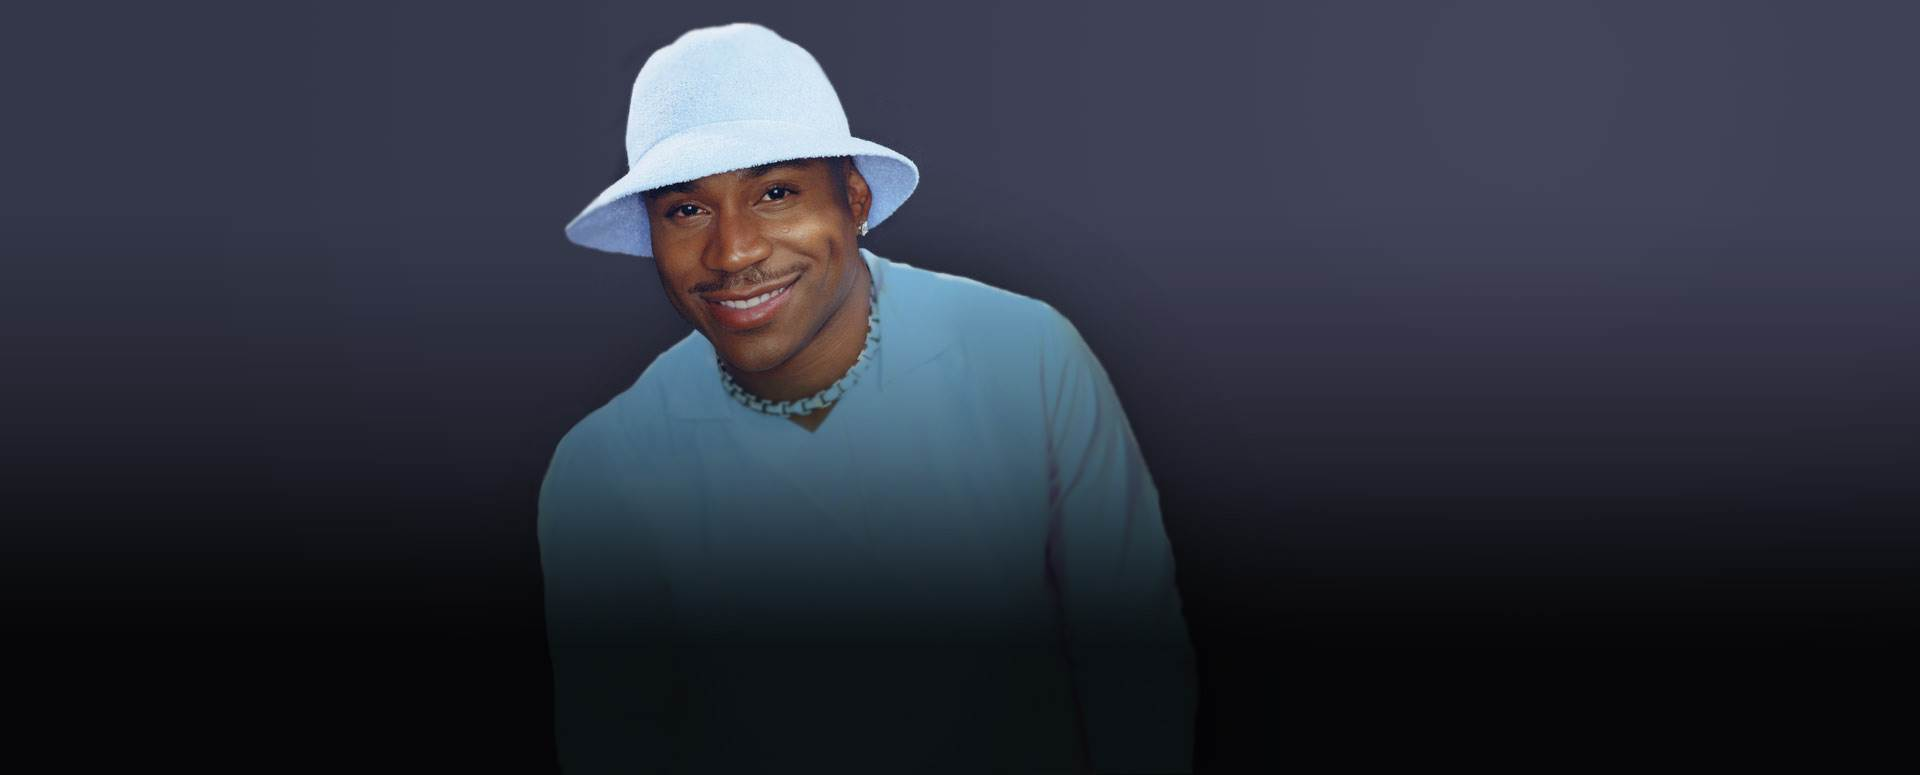 an analysis of the music of ll cool j a rapper